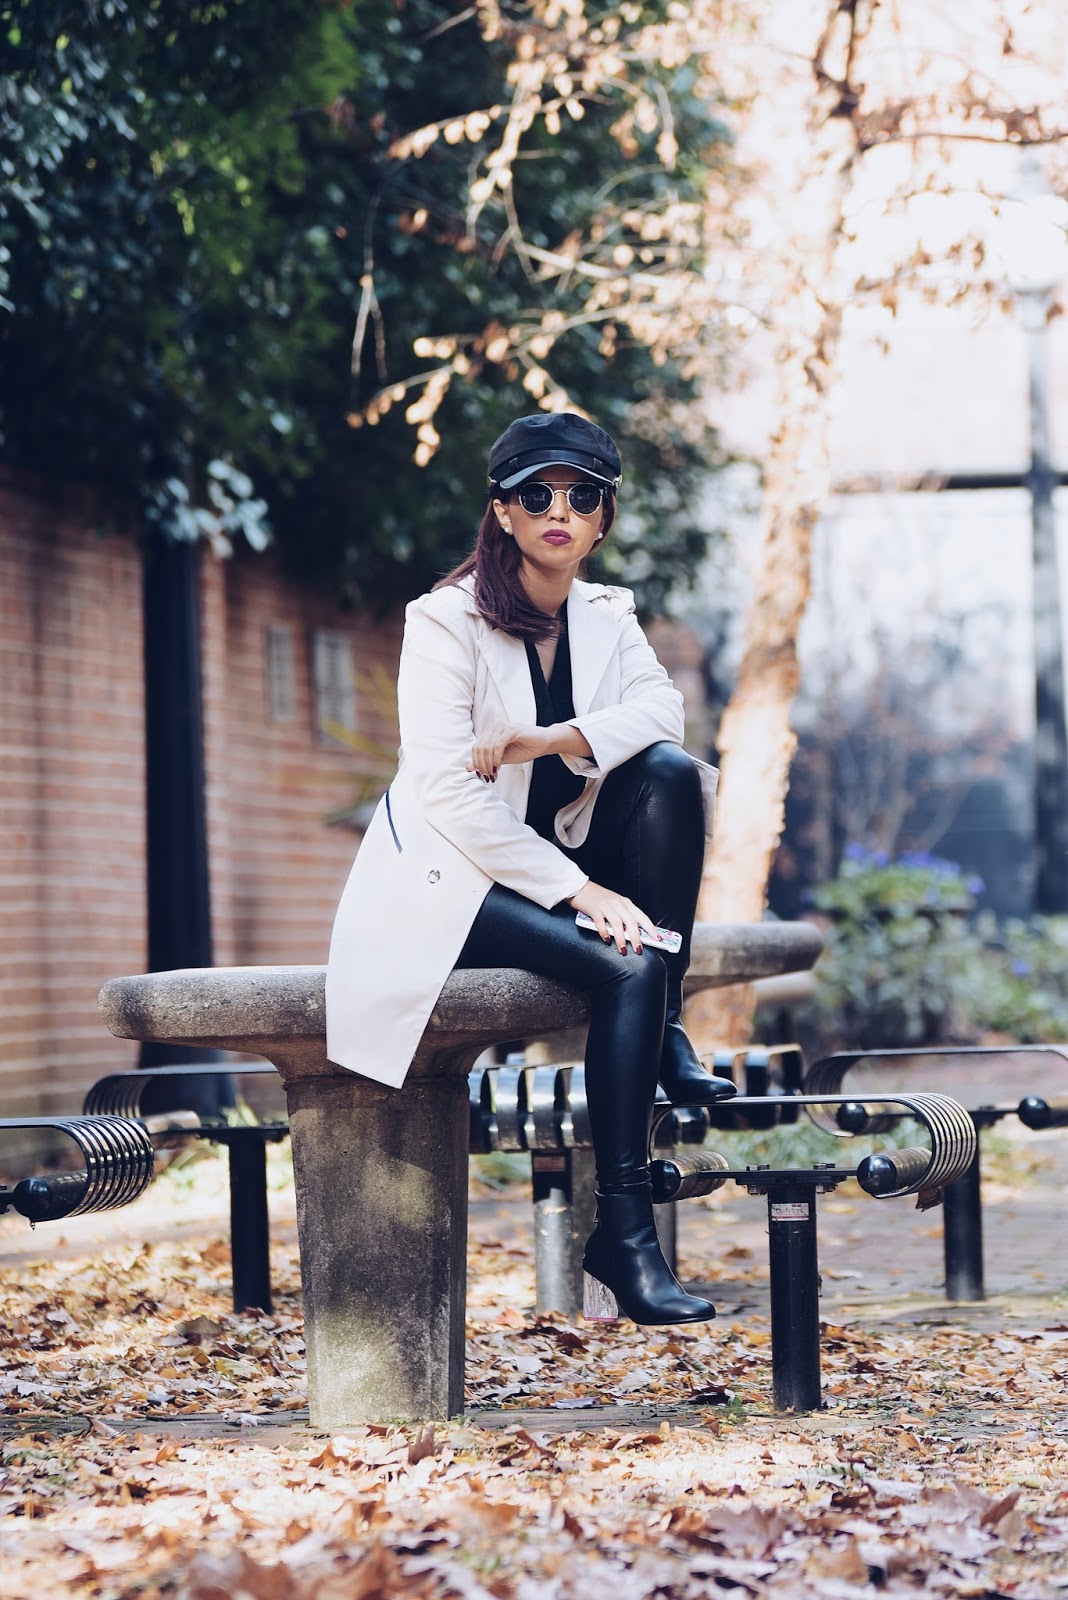 Monocromáticos Con Estilo by Mari Estilo. Wearing:  Marisol Trench: Gamiss Boots: Twinkledeals Cap: LightInTheBox Pants: SheIn Sweater: Choies  Mau Coat: Gamiss Pants: Calvin Klein Shoes: Calvin Klein Sweater: LightInTheBox